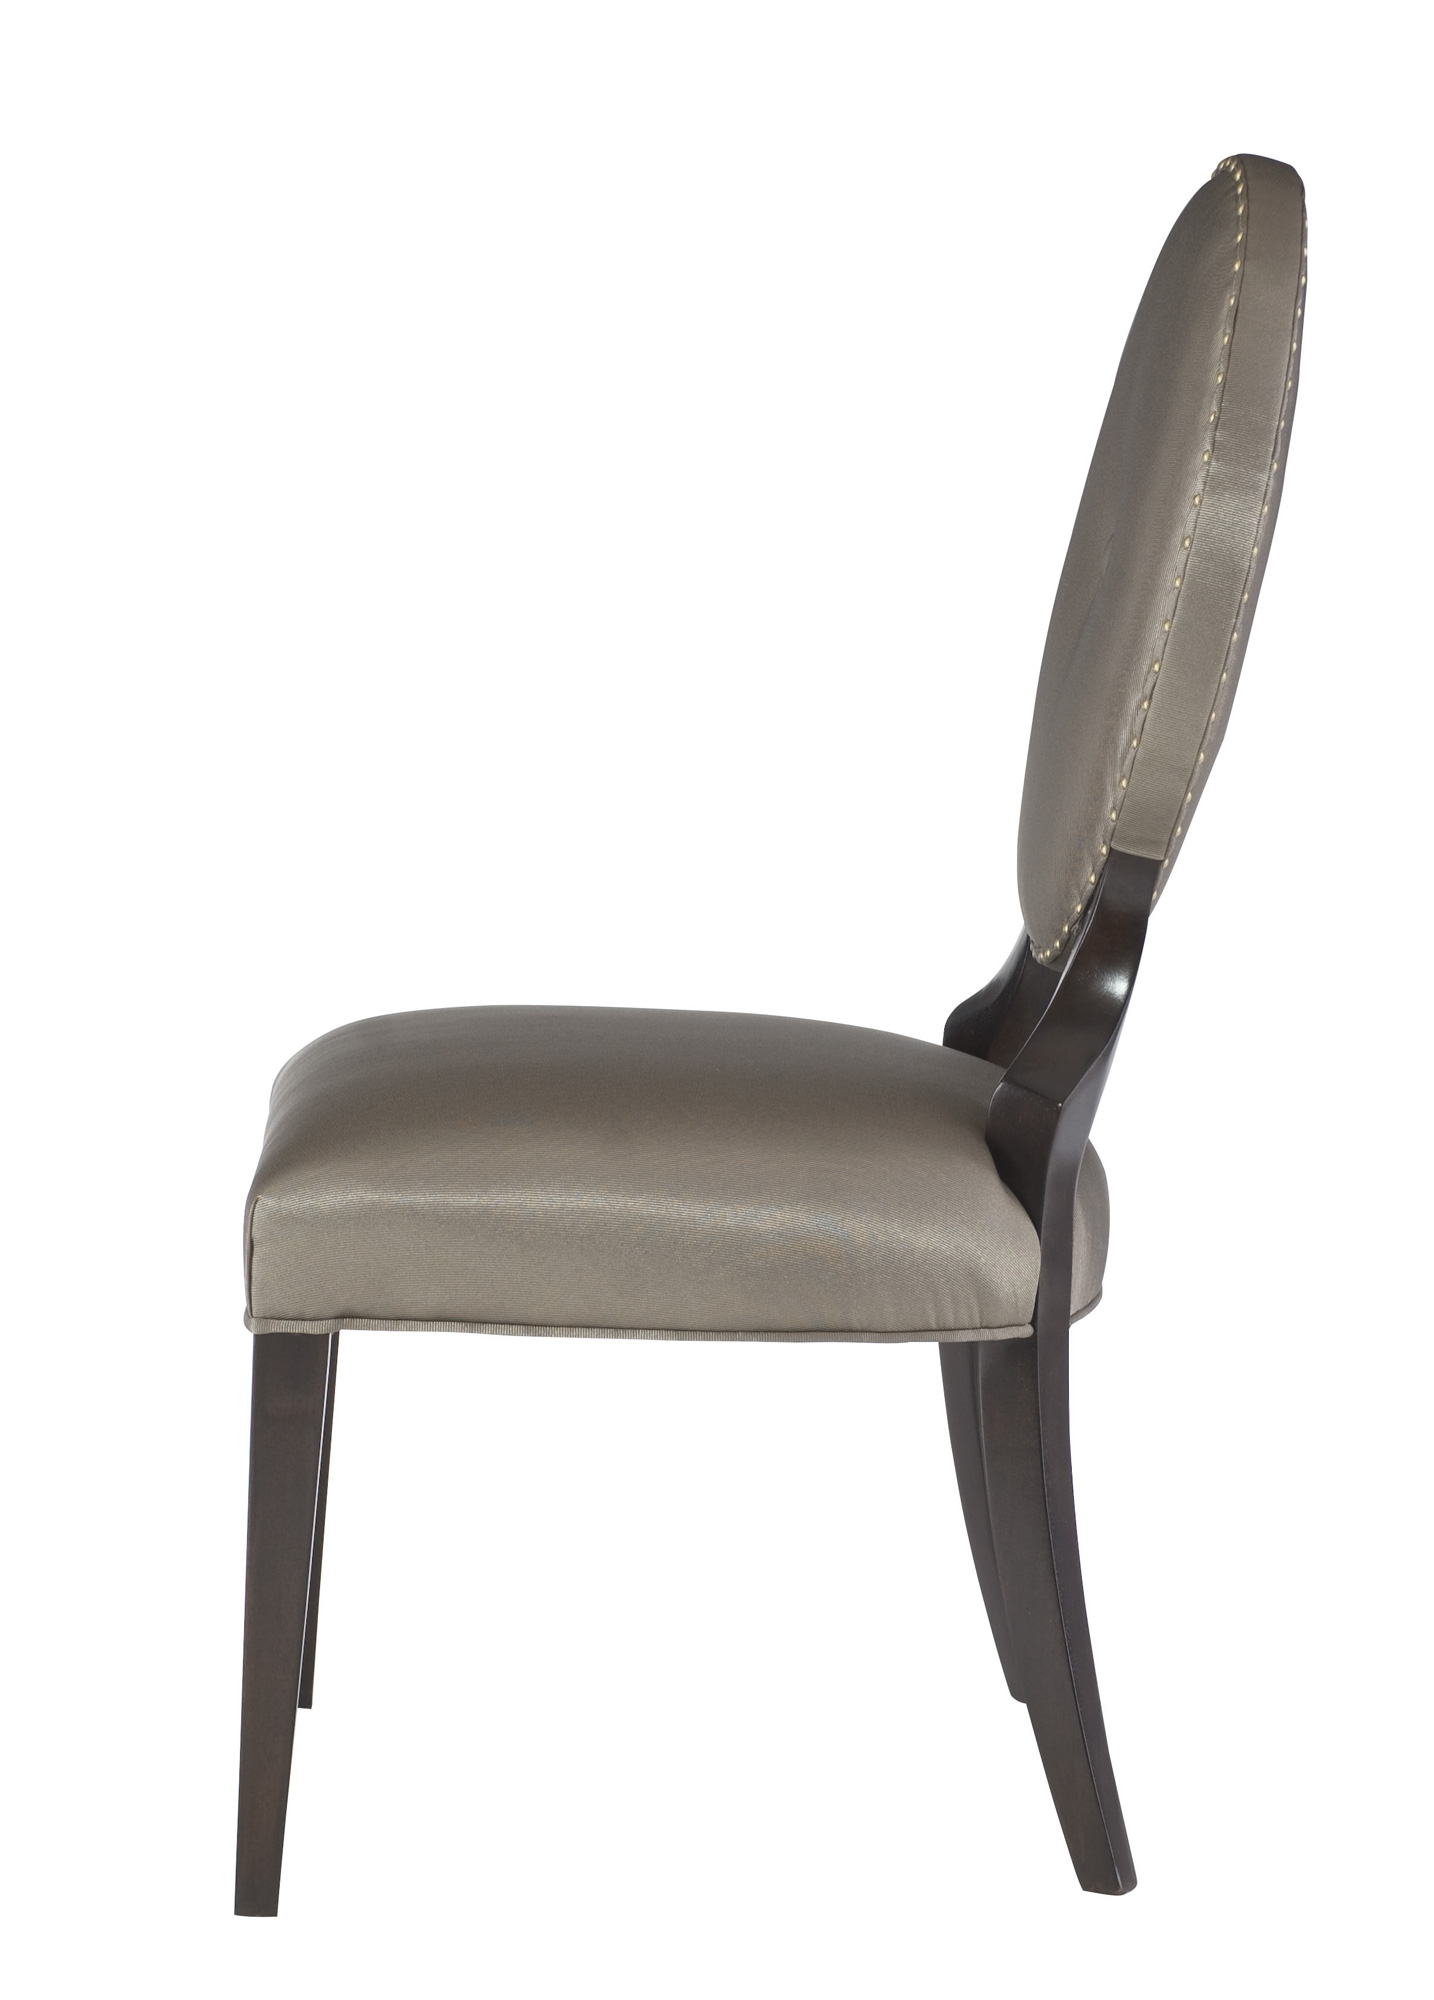 Bernhardt Chair Side Chair Bernhardt